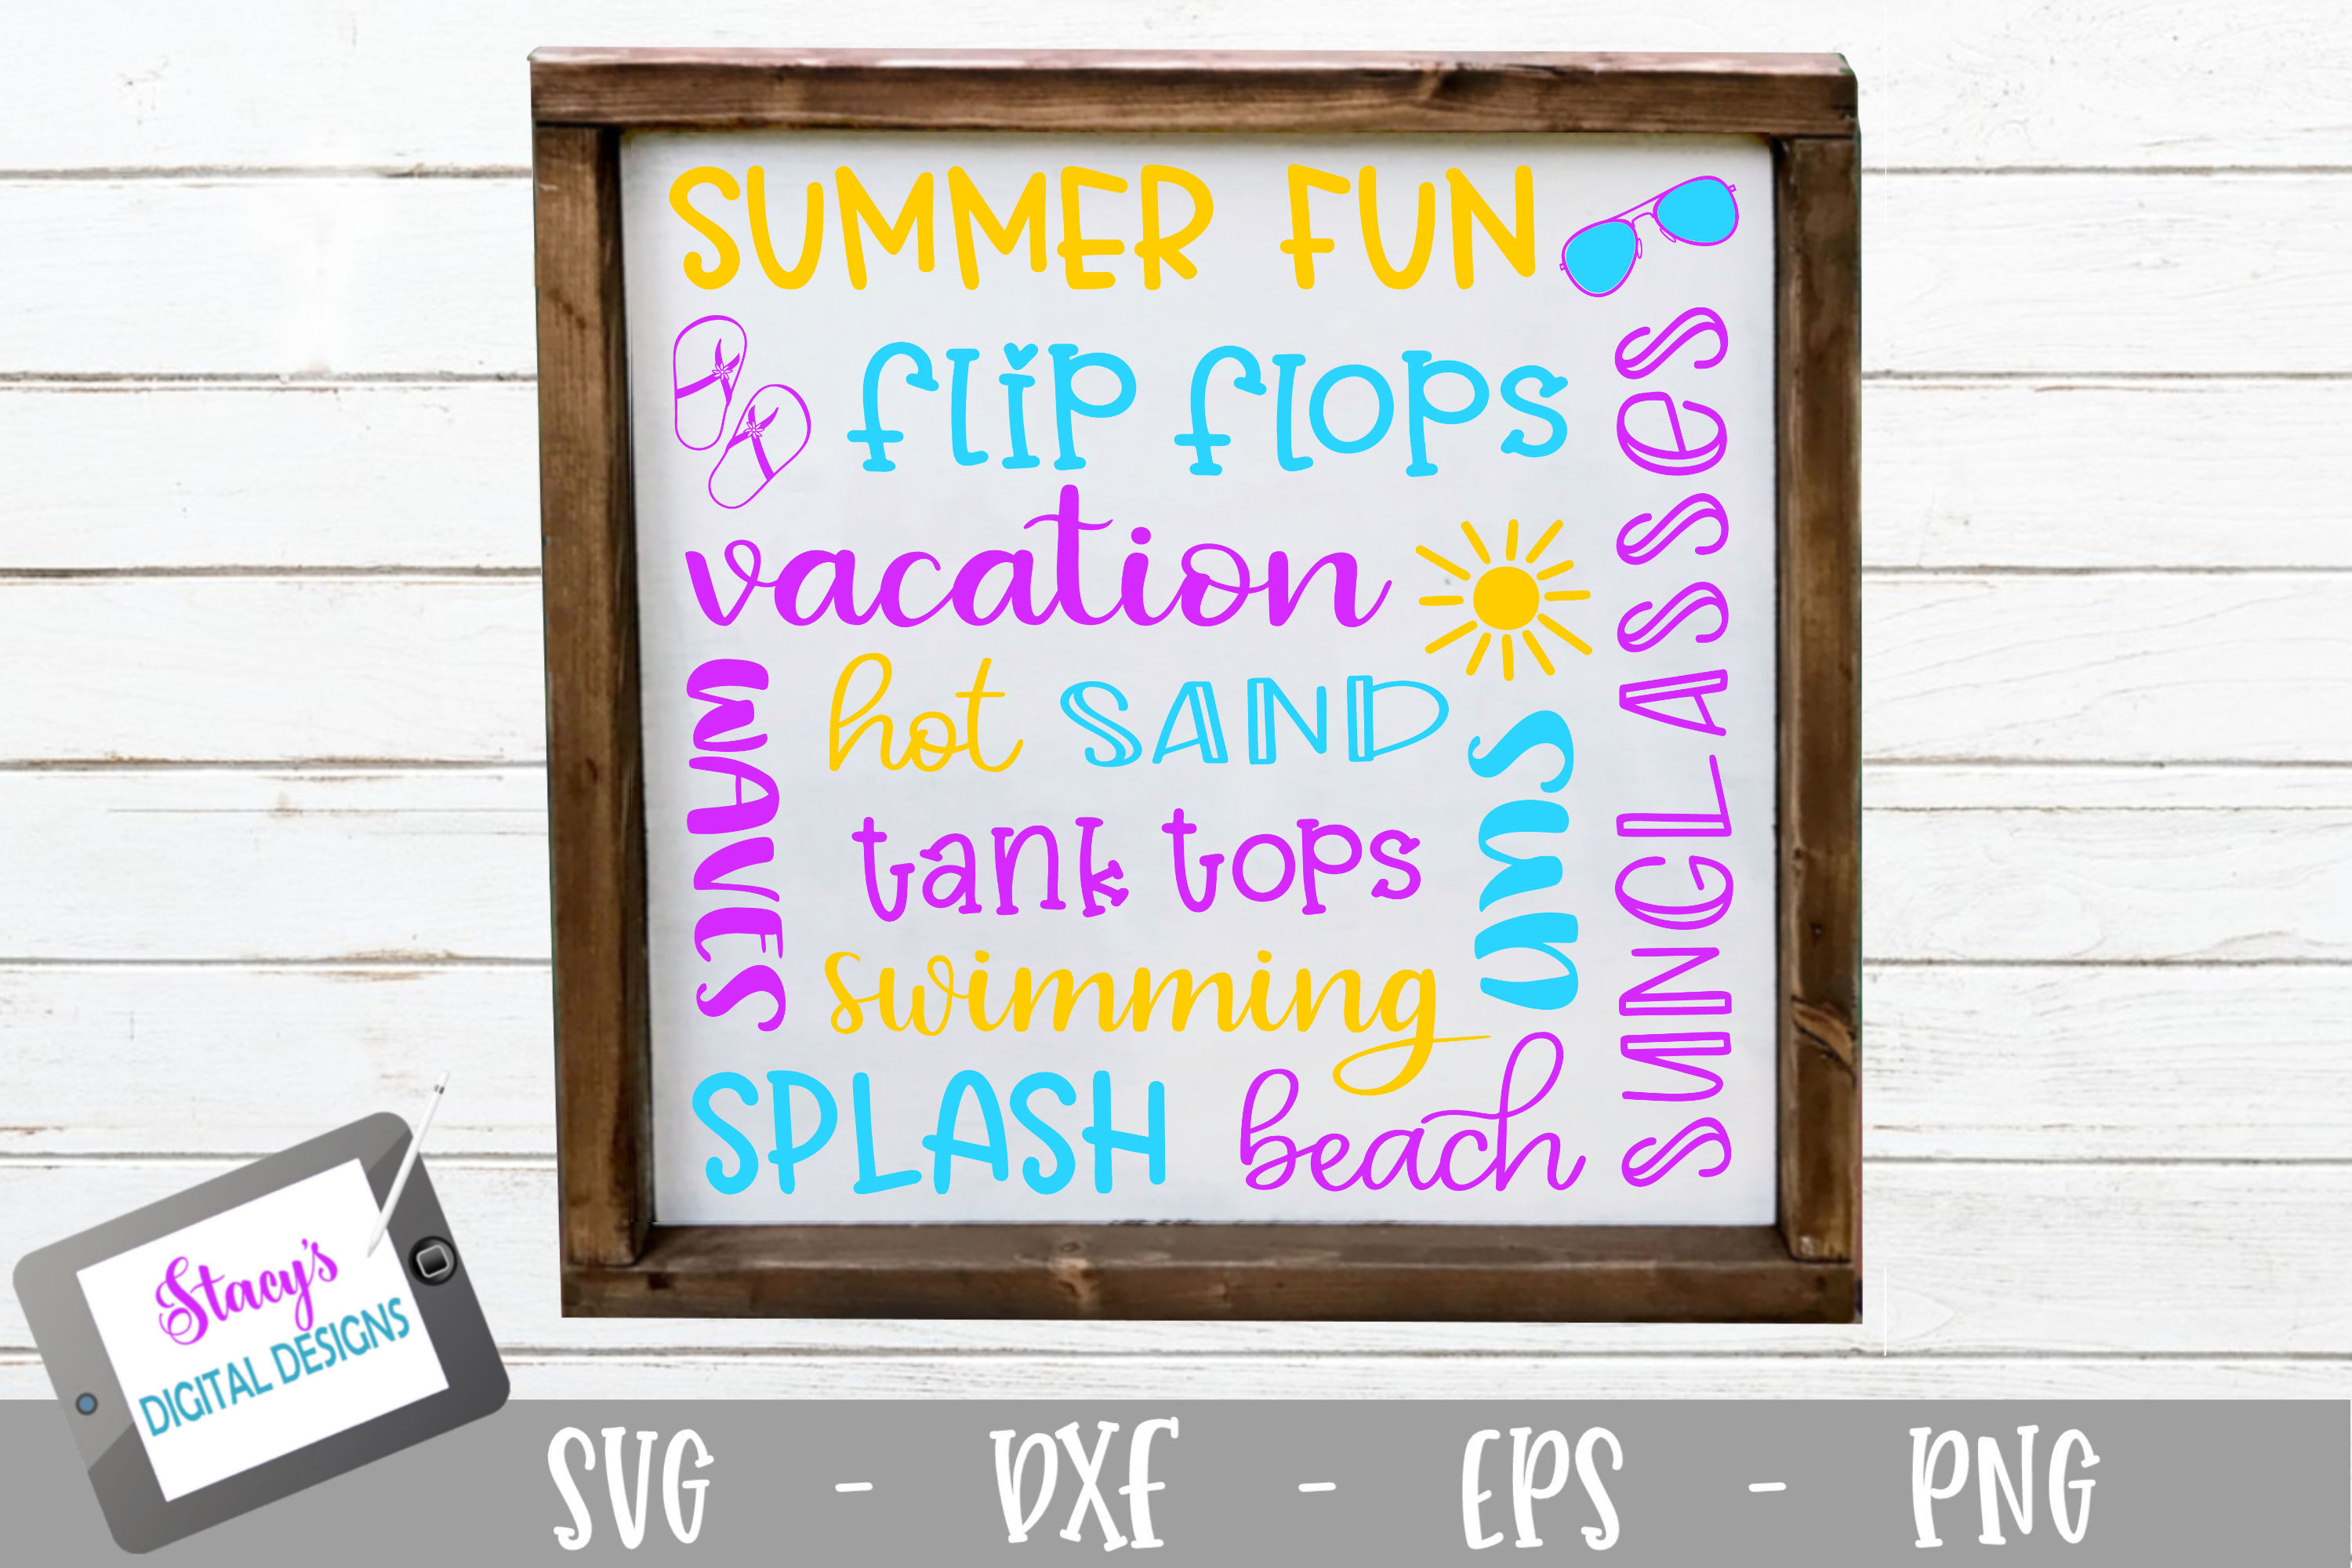 Download Free Summer Subway Art Graphic By Stacysdigitaldesigns Creative Fabrica for Cricut Explore, Silhouette and other cutting machines.